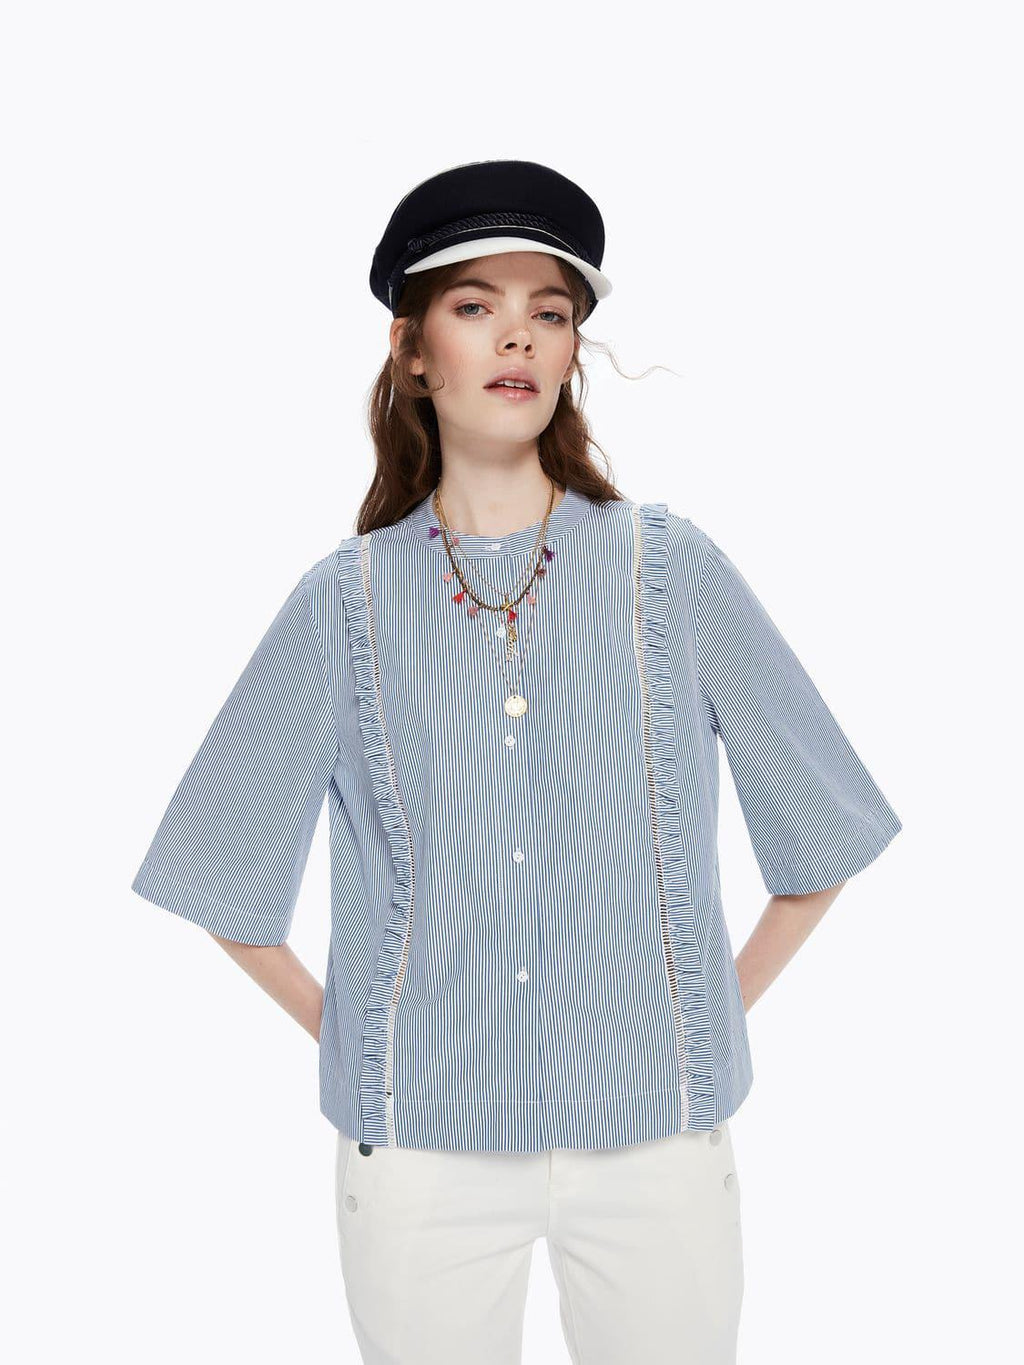 Buy Ruffle and Ladder Detail Shirt from SCOTCH AND SODA at paya boutique